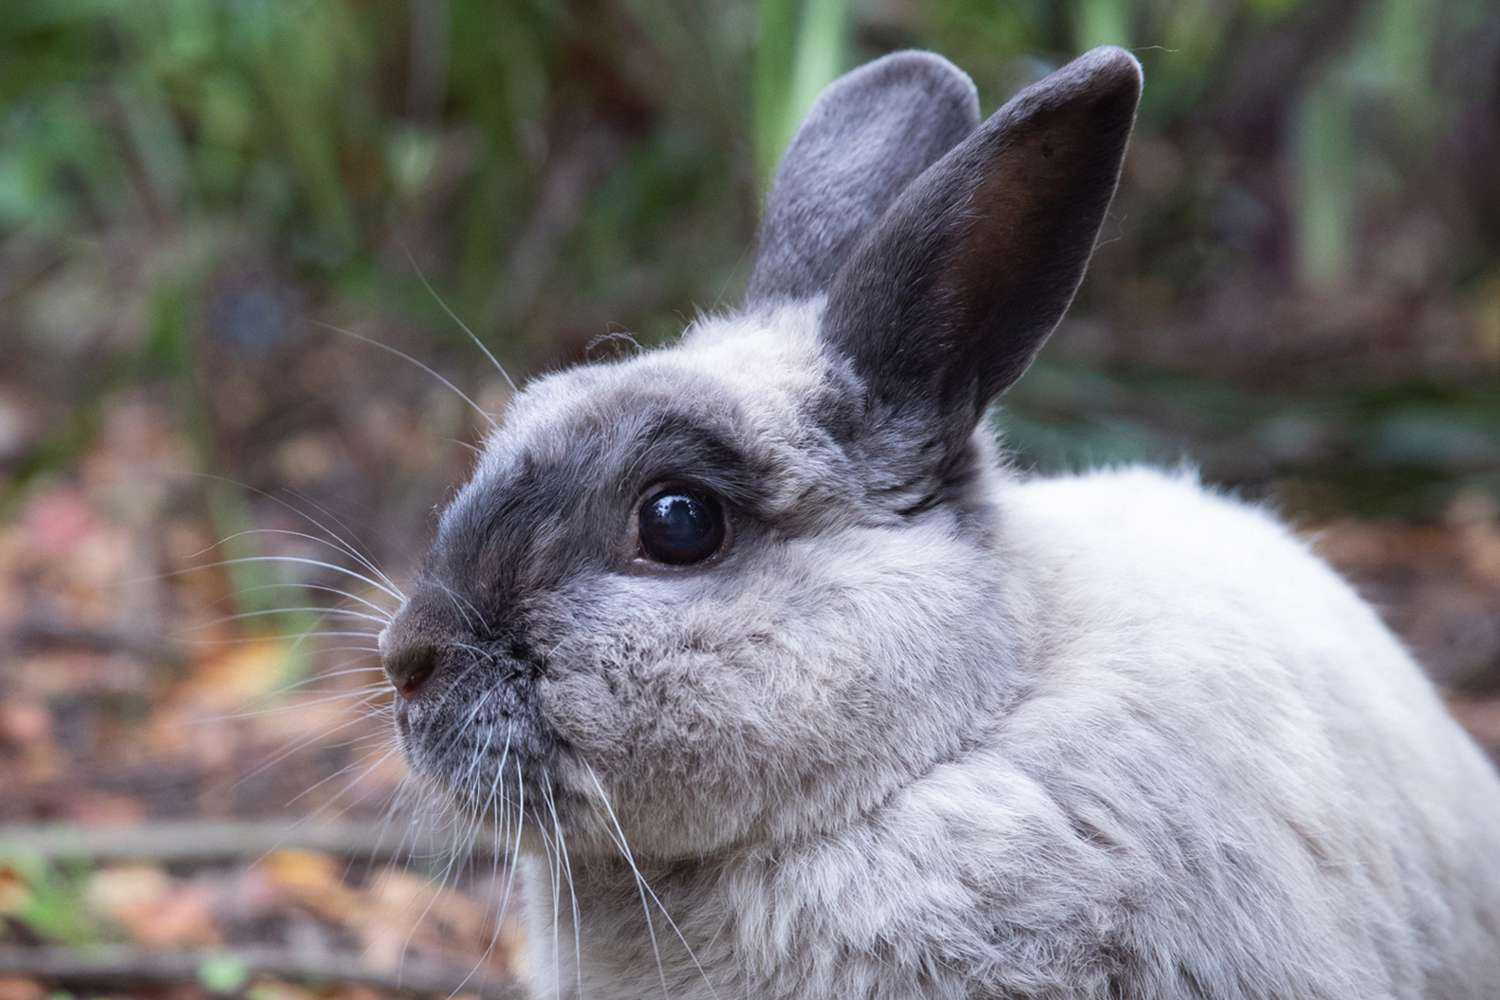 Gray and black rabbit outside closeup on its face